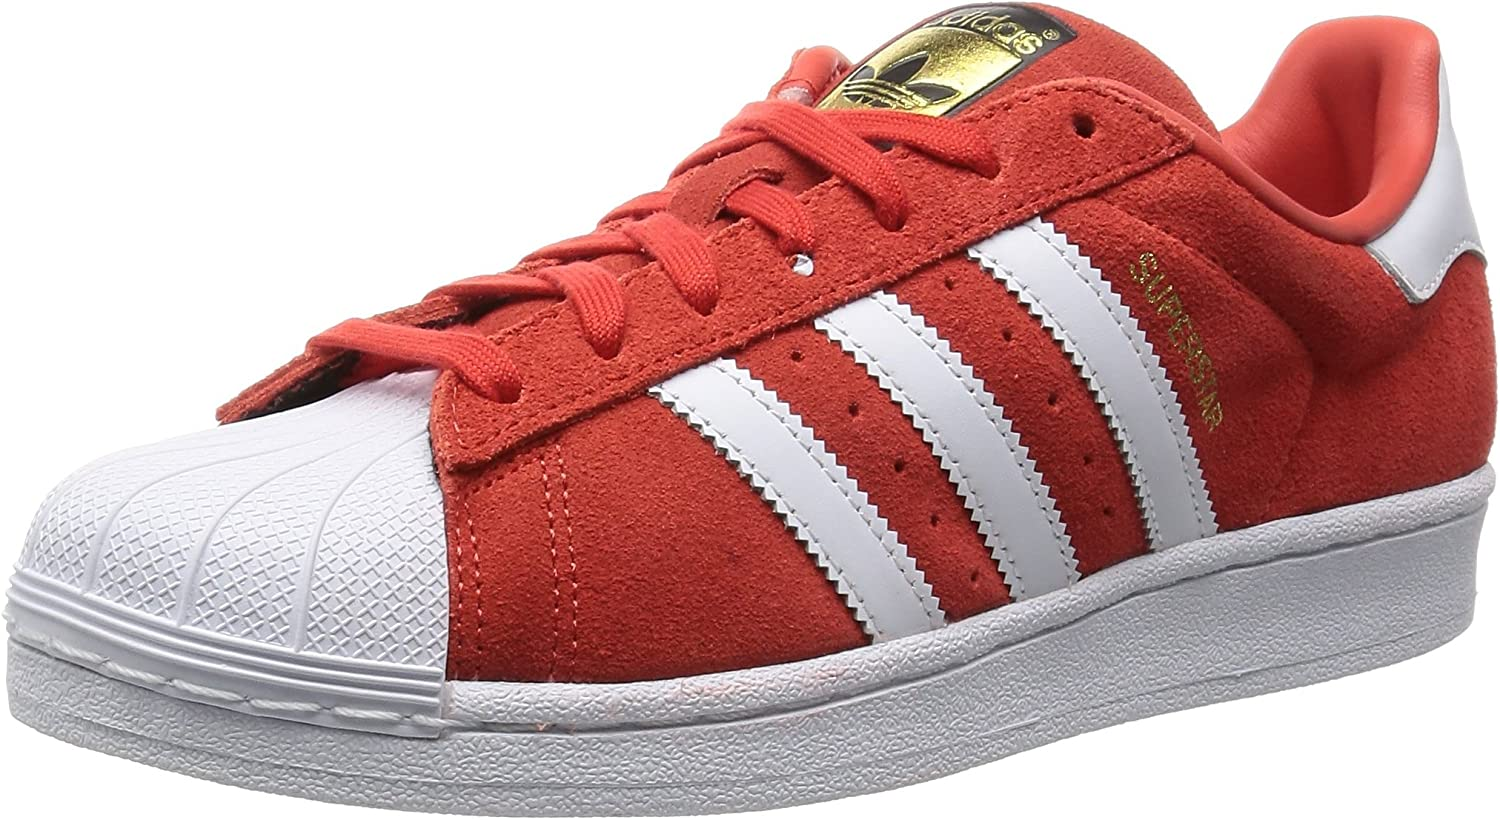 adidas Superstar Suede, Chaussures de Basketball homme, Rouge, 42 ...